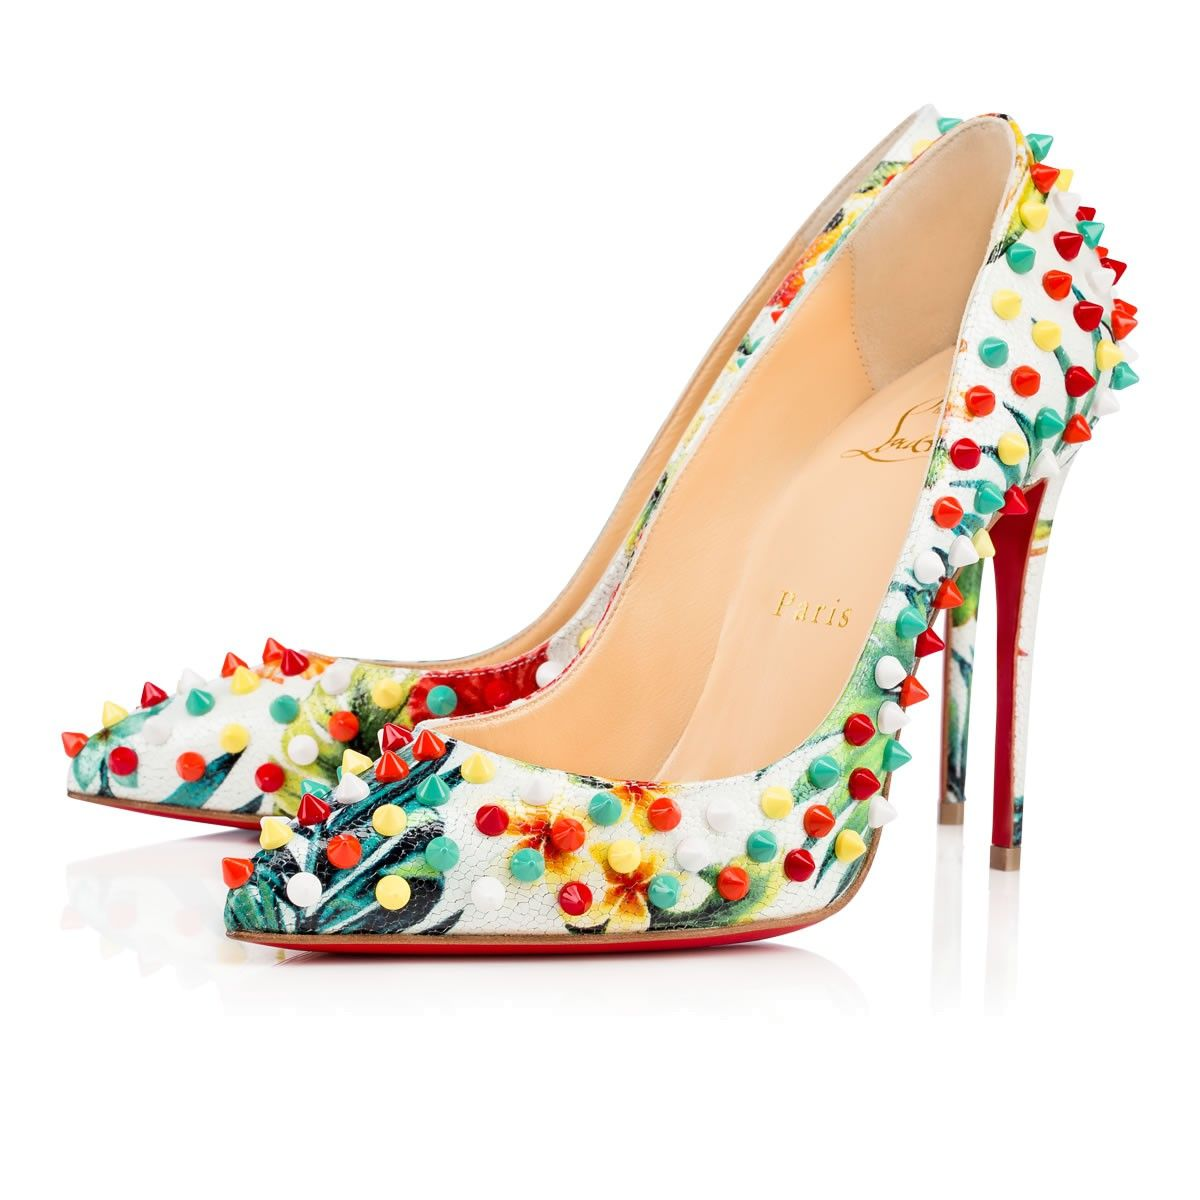 newest collection 220ce c5a1b CHRISTIAN LOUBOUTIN Follies Spikes Calf Hawaii, White ...